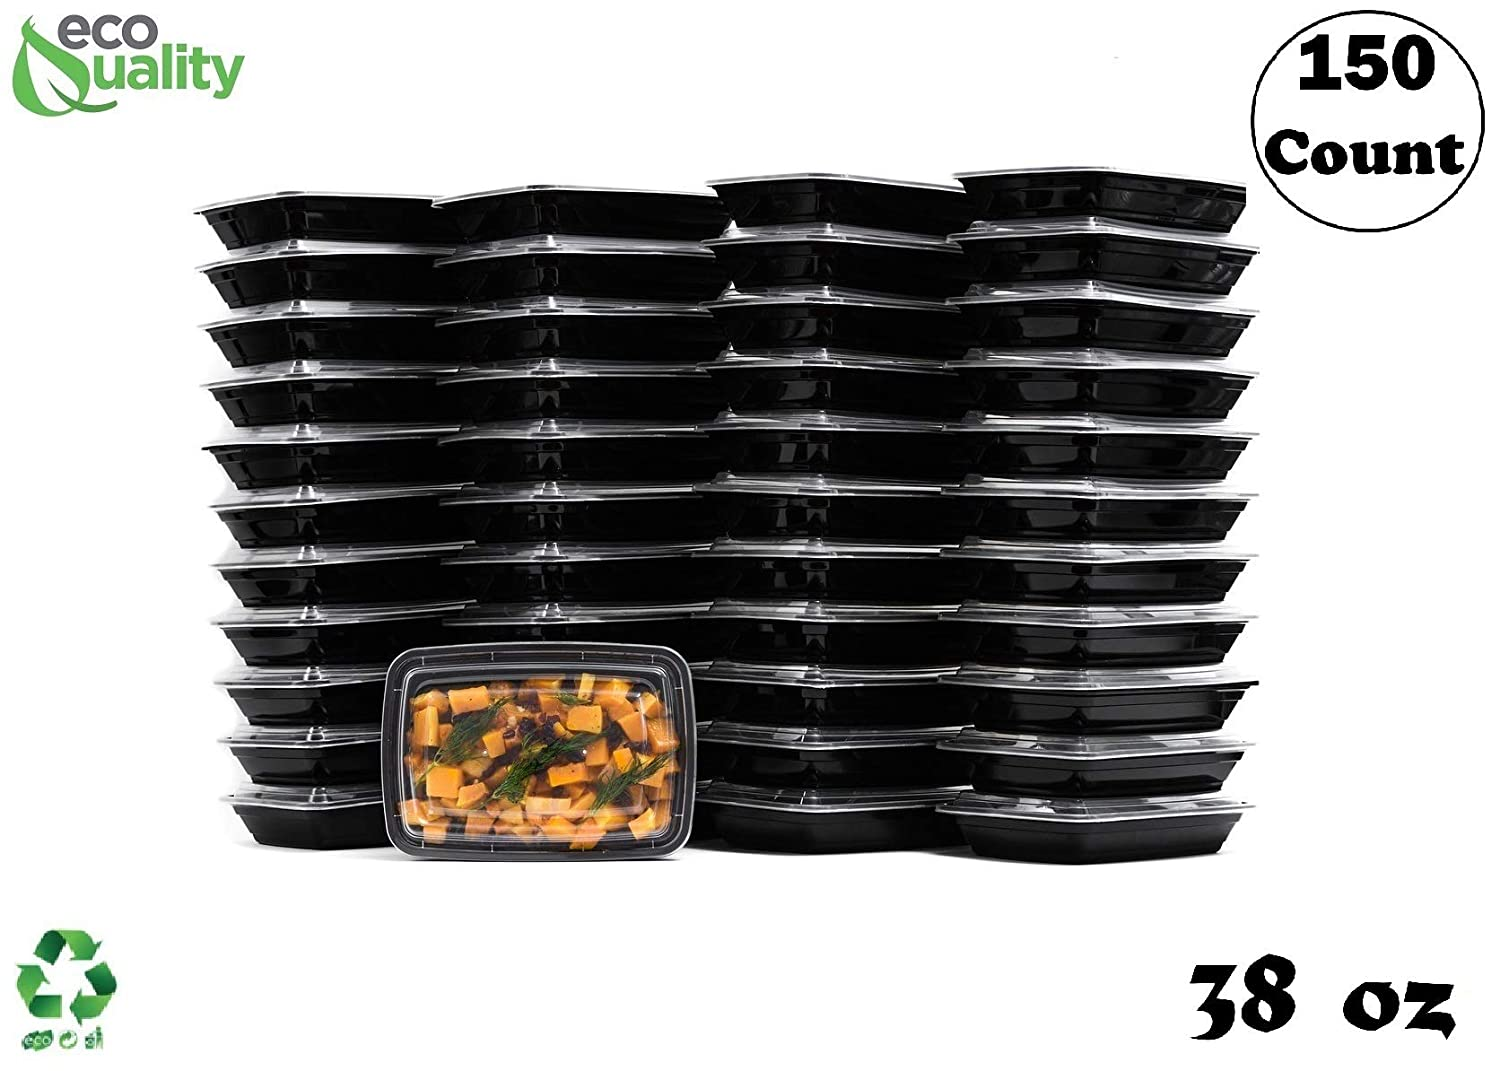 38 oz Reusable Food Storage 150 Pack Containers with Lids by EcoQuality – Rectangular BPA Free Freezer, Microwave & Dishwasher Safe – Airtight & Watertight Stackable, Lunch Meal Prep, To-Go, Bento Box